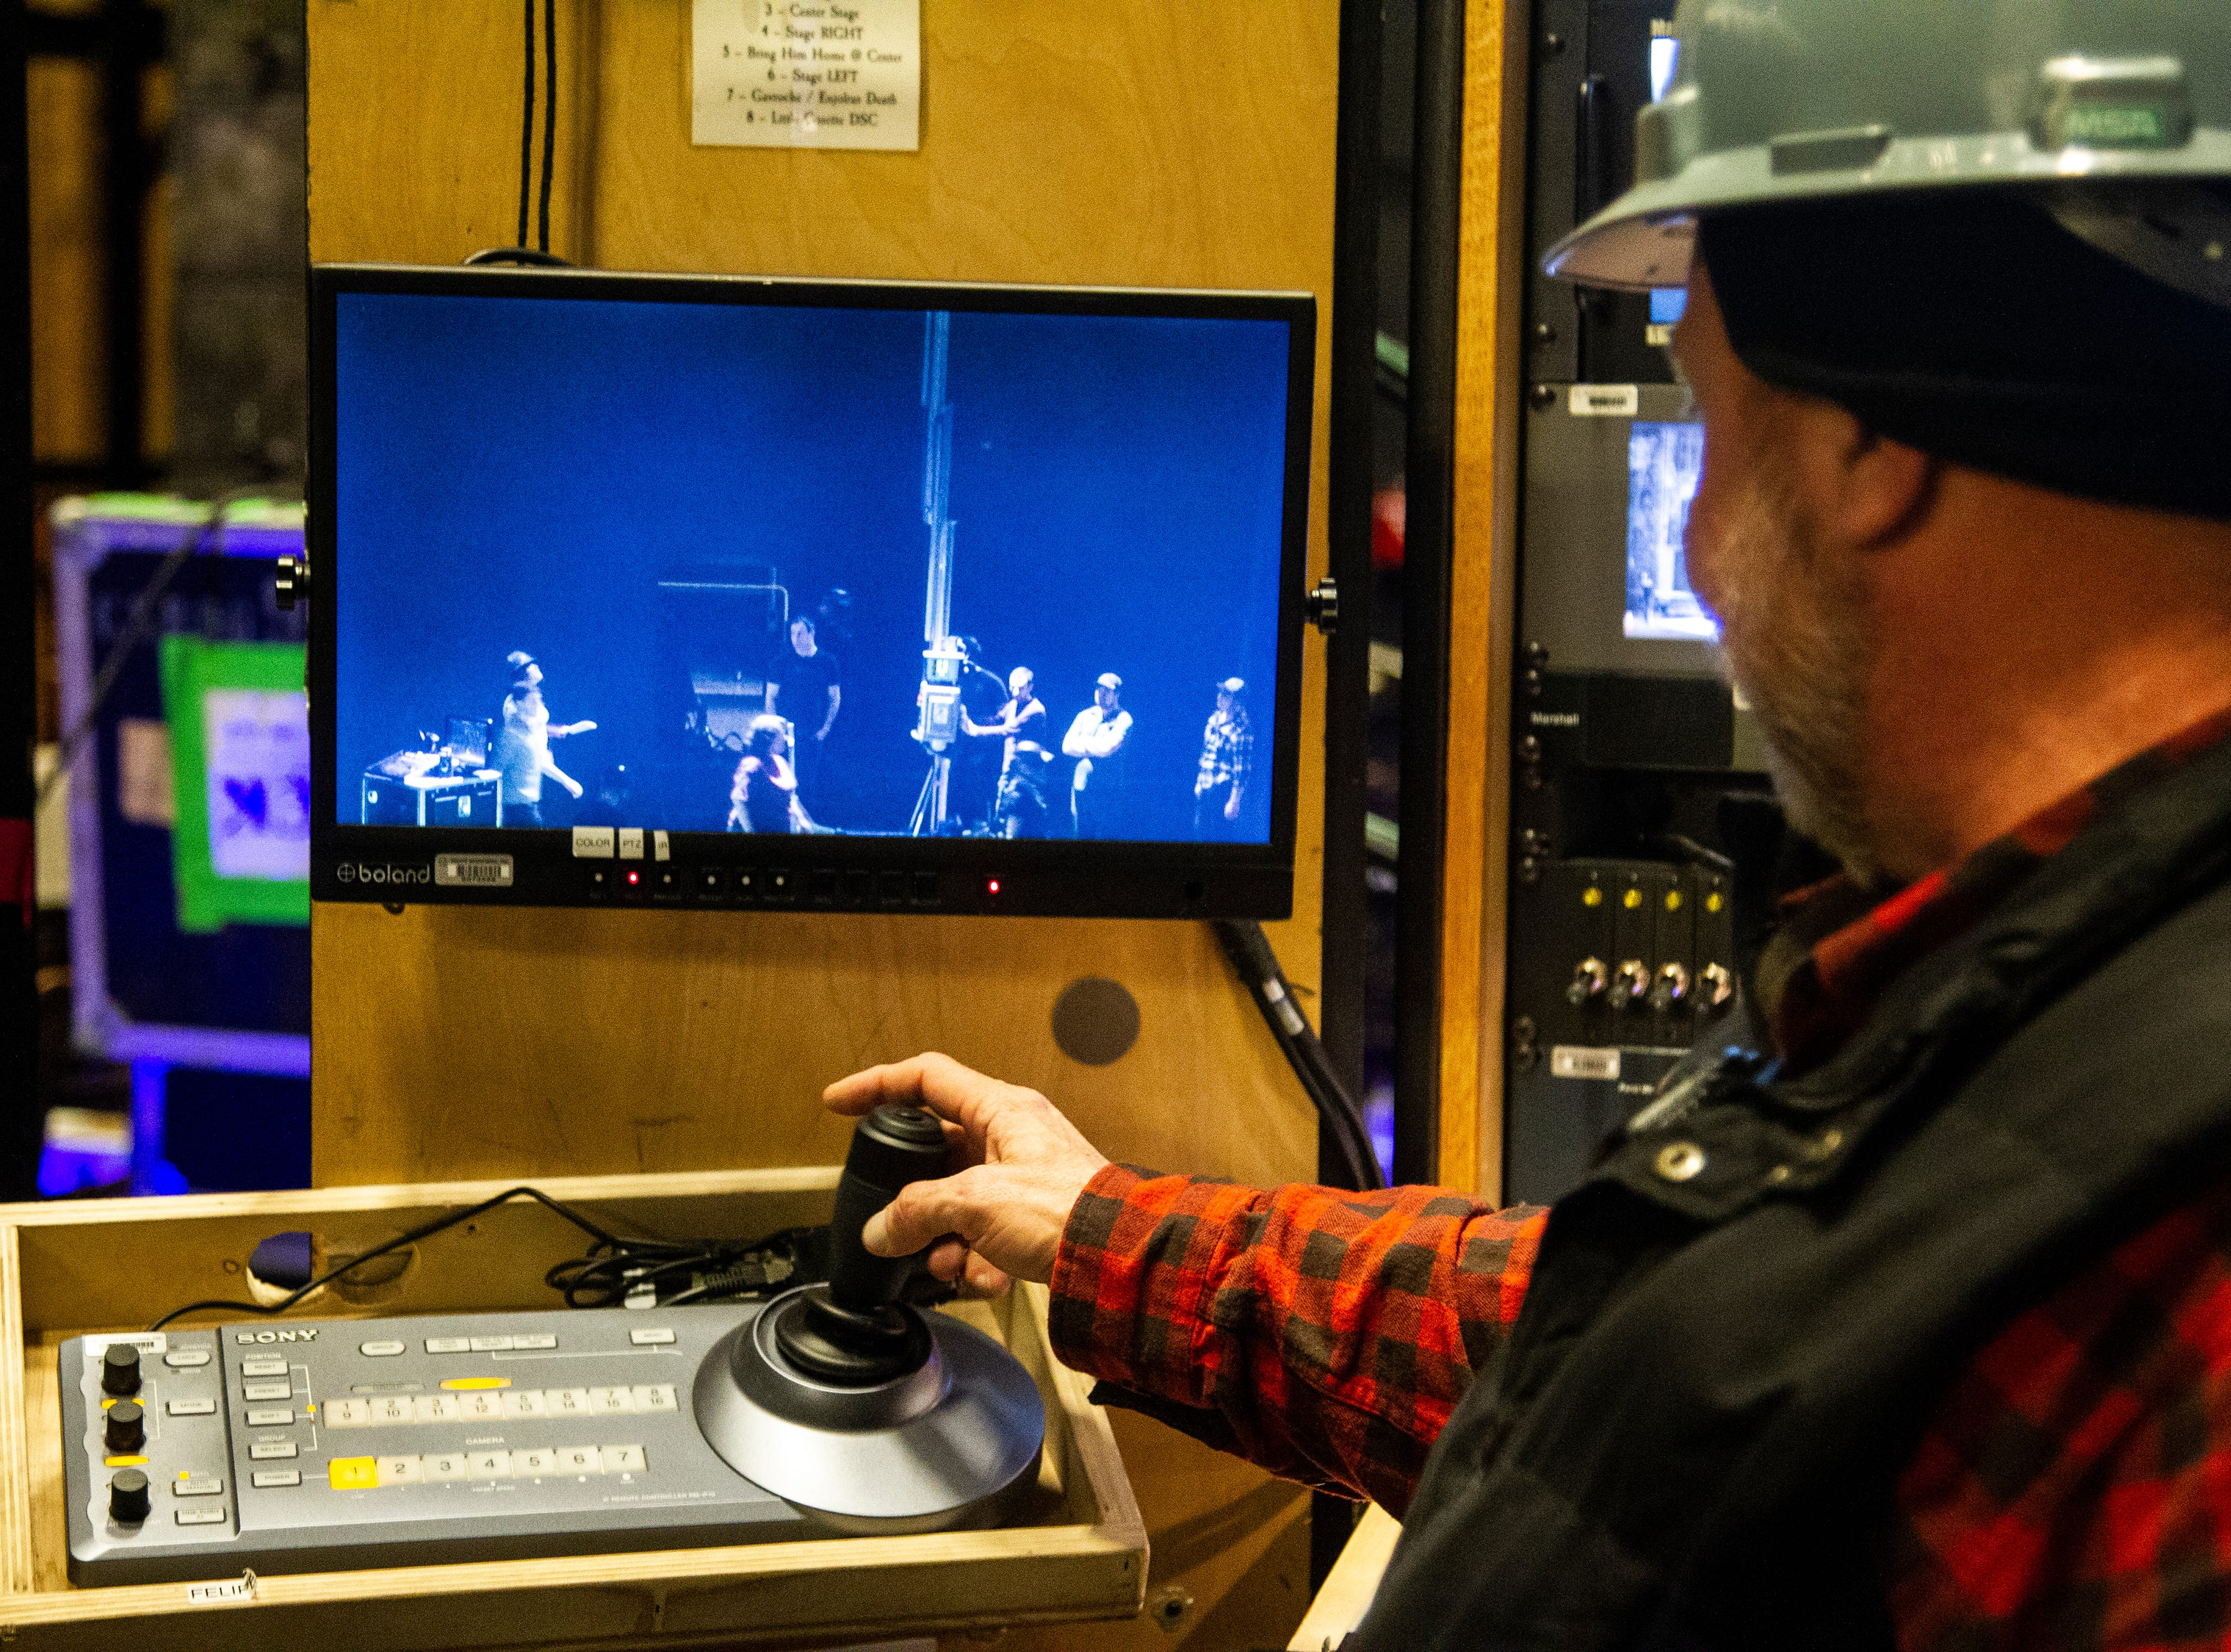 Jack McLeod, production stage manager, demonstrates with a remote camera used during the production of Les Misérables while crew set up before its opening show on Tuesday, Dec. 4, 2018, at Hancher Auditorium on the University of Iowa campus in Iowa City.